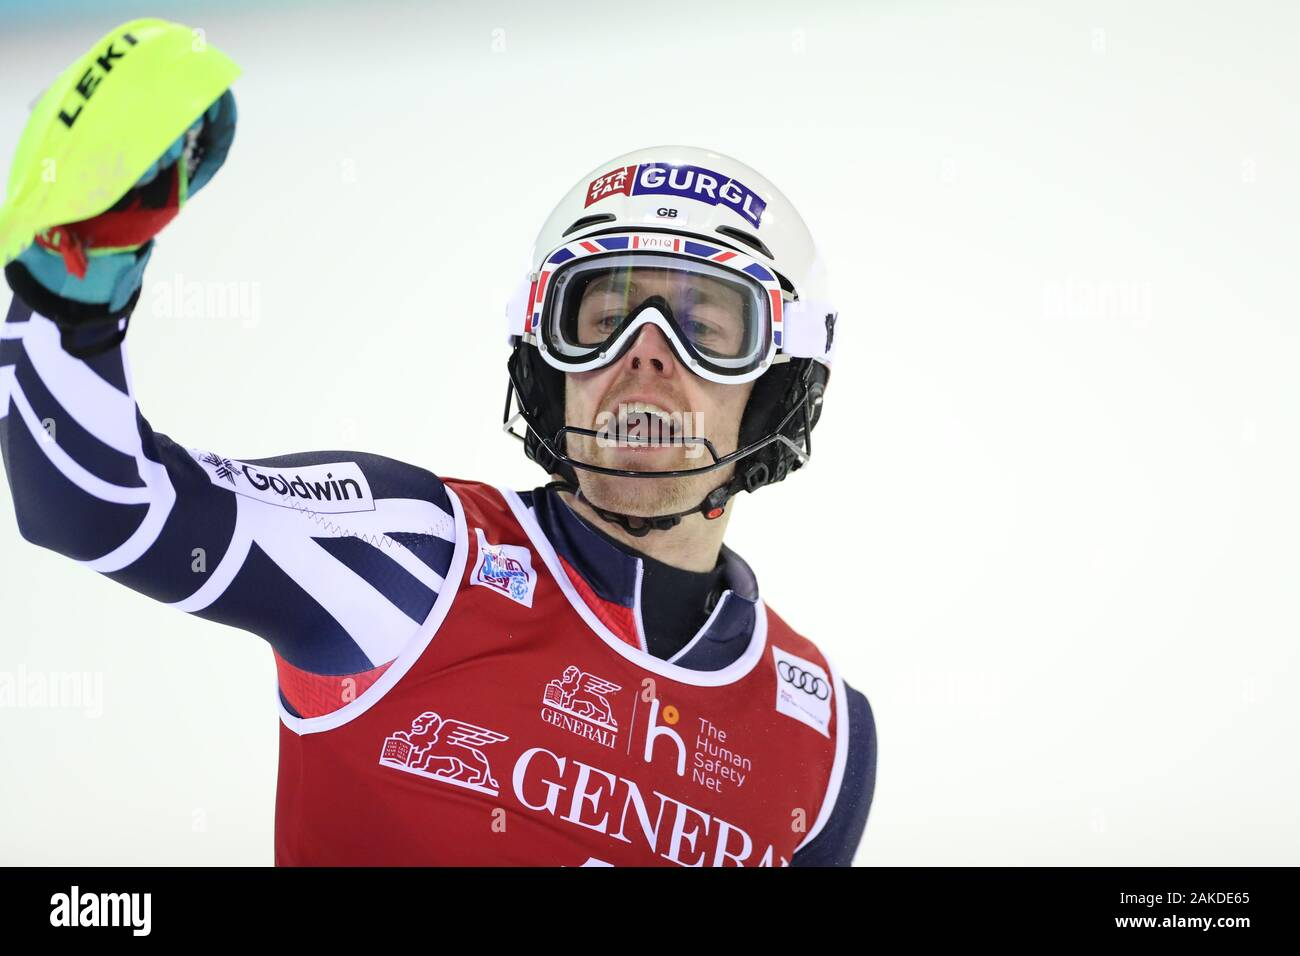 Madonna di Campiglio, Italy. 8th January, 2020. FIS Alpine Ski World Cup Men's Night Slalom in Madonna di Campiglio, Italy on January 8, 2020, Dave Ryding (GBR) Photo: Pierre Teyssot/Espa-Images Credit: European Sports Photographic Agency/Alamy Live News Stock Photo